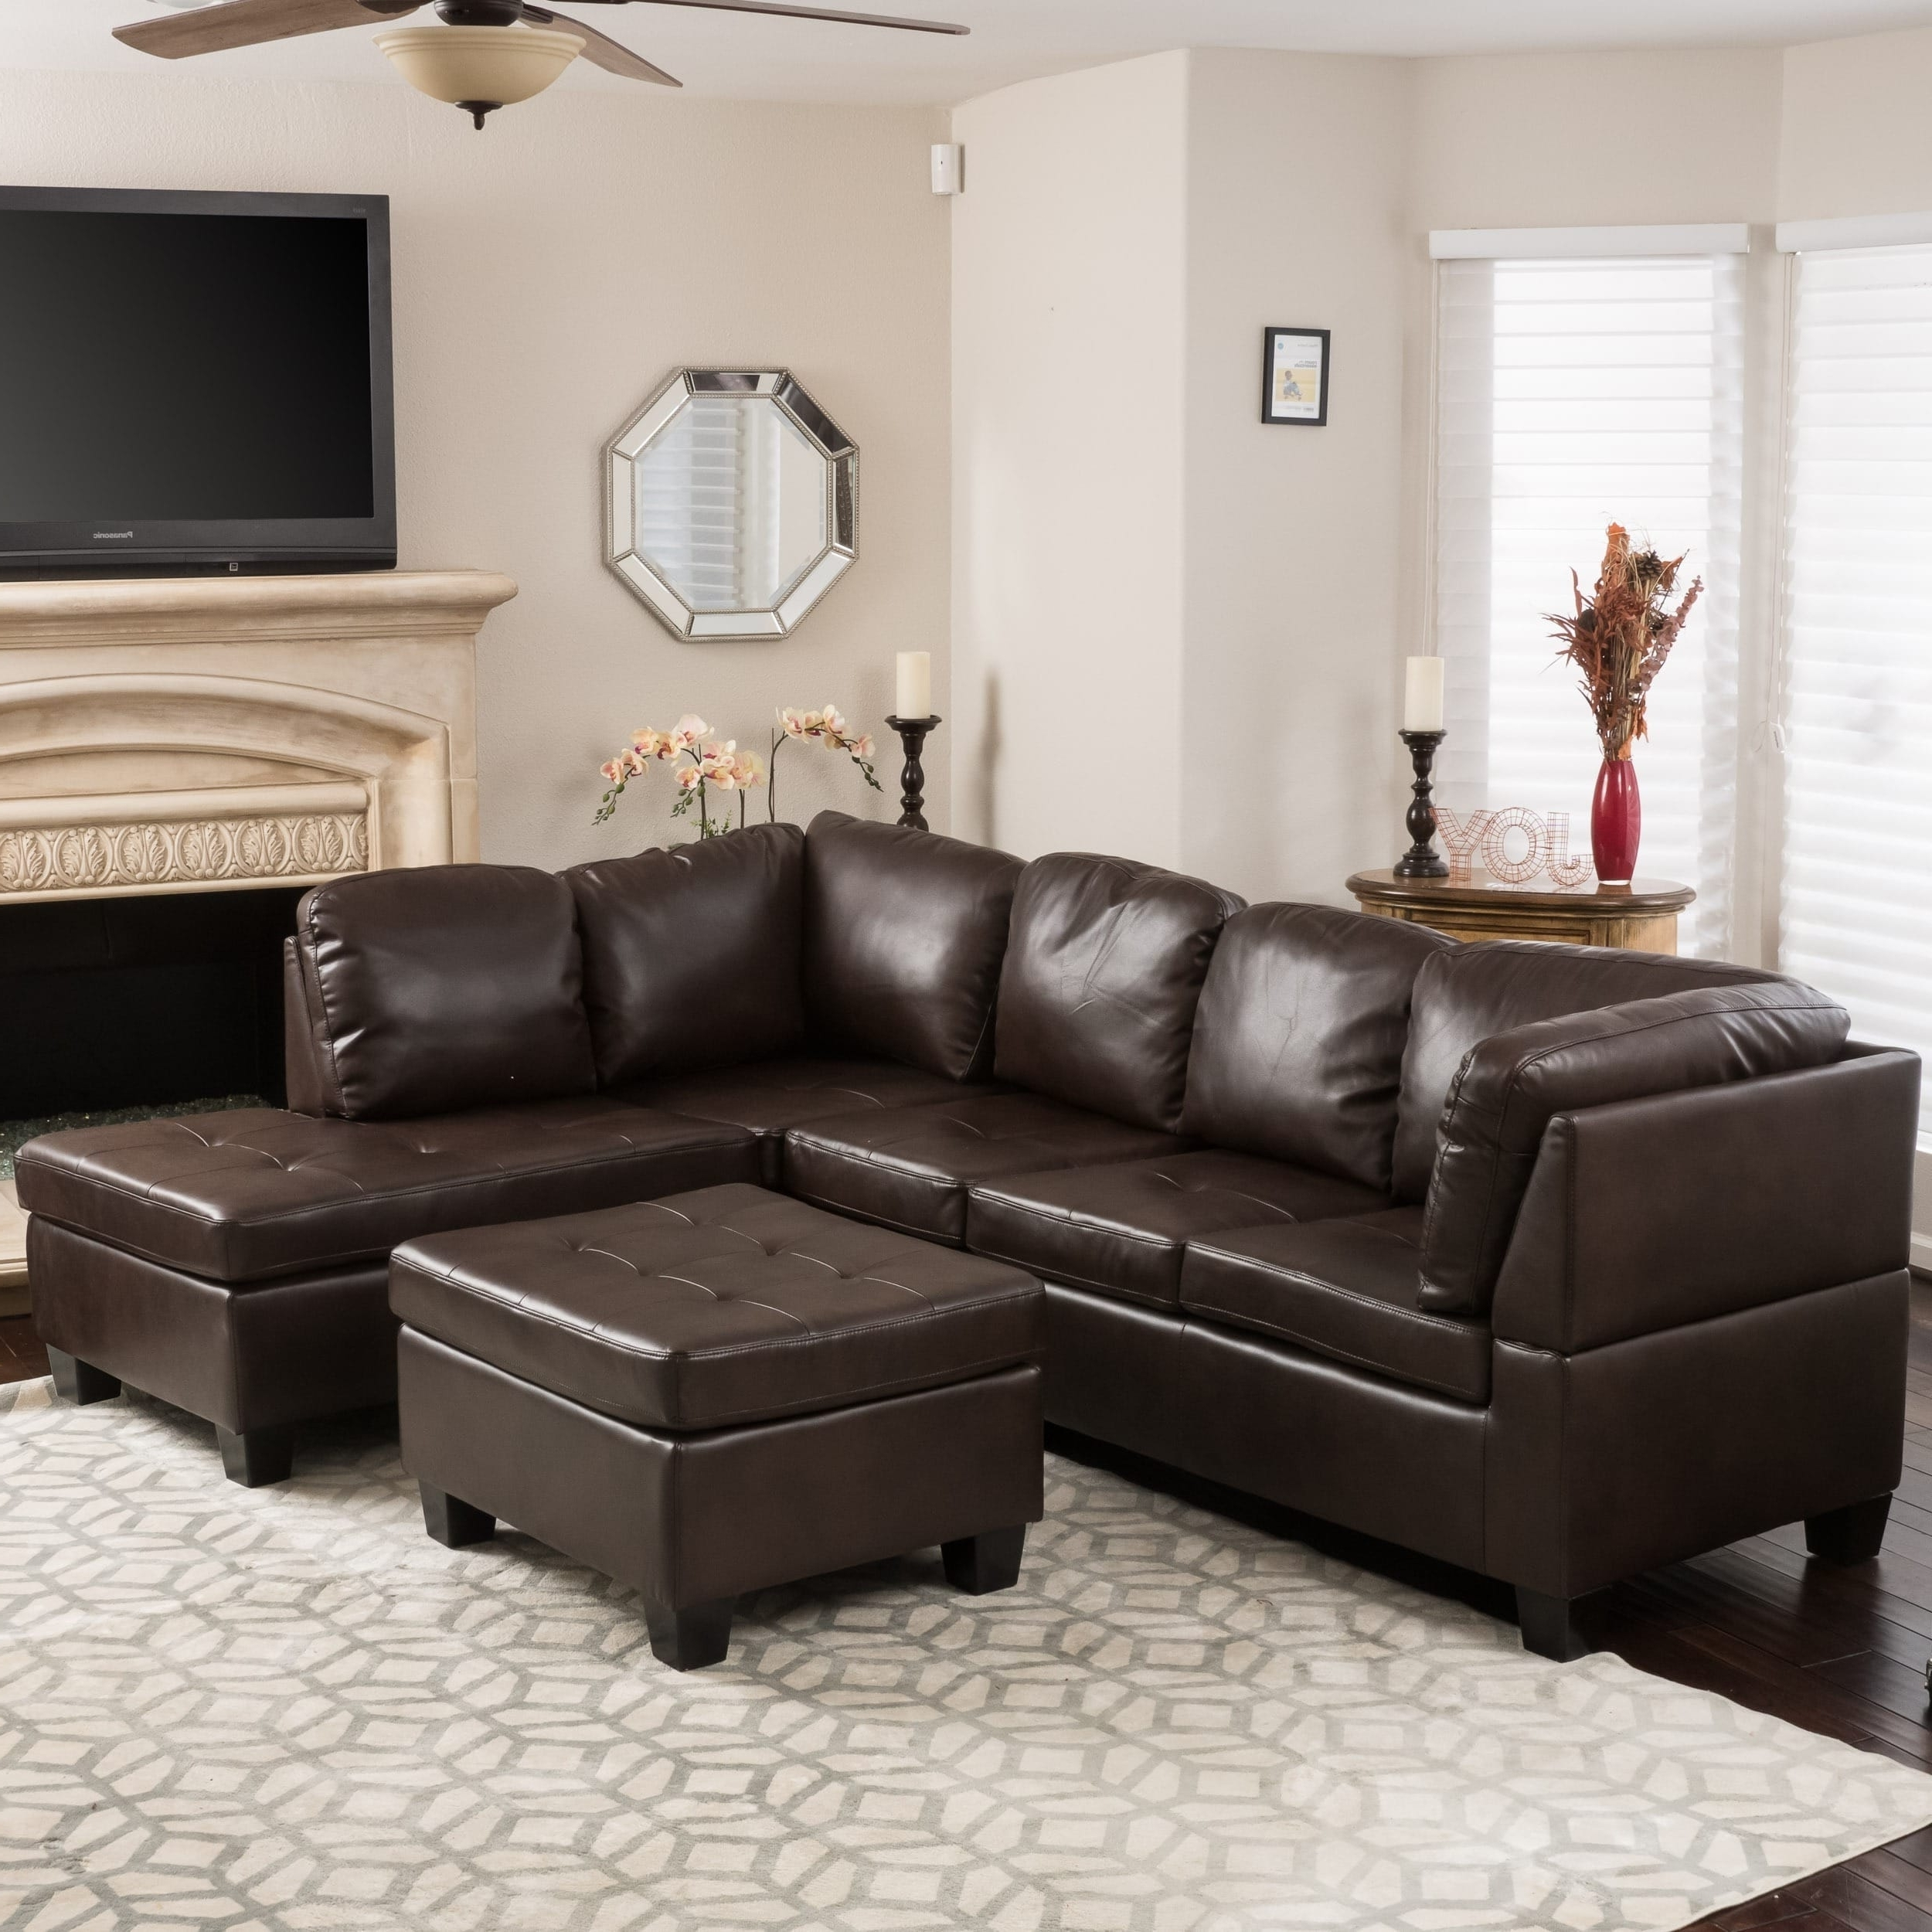 Canterbury 3 Piece Pu Leather Sectional Sofa Setchristopher With Regard To Most Popular Leather Sectional Sofas (View 17 of 20)